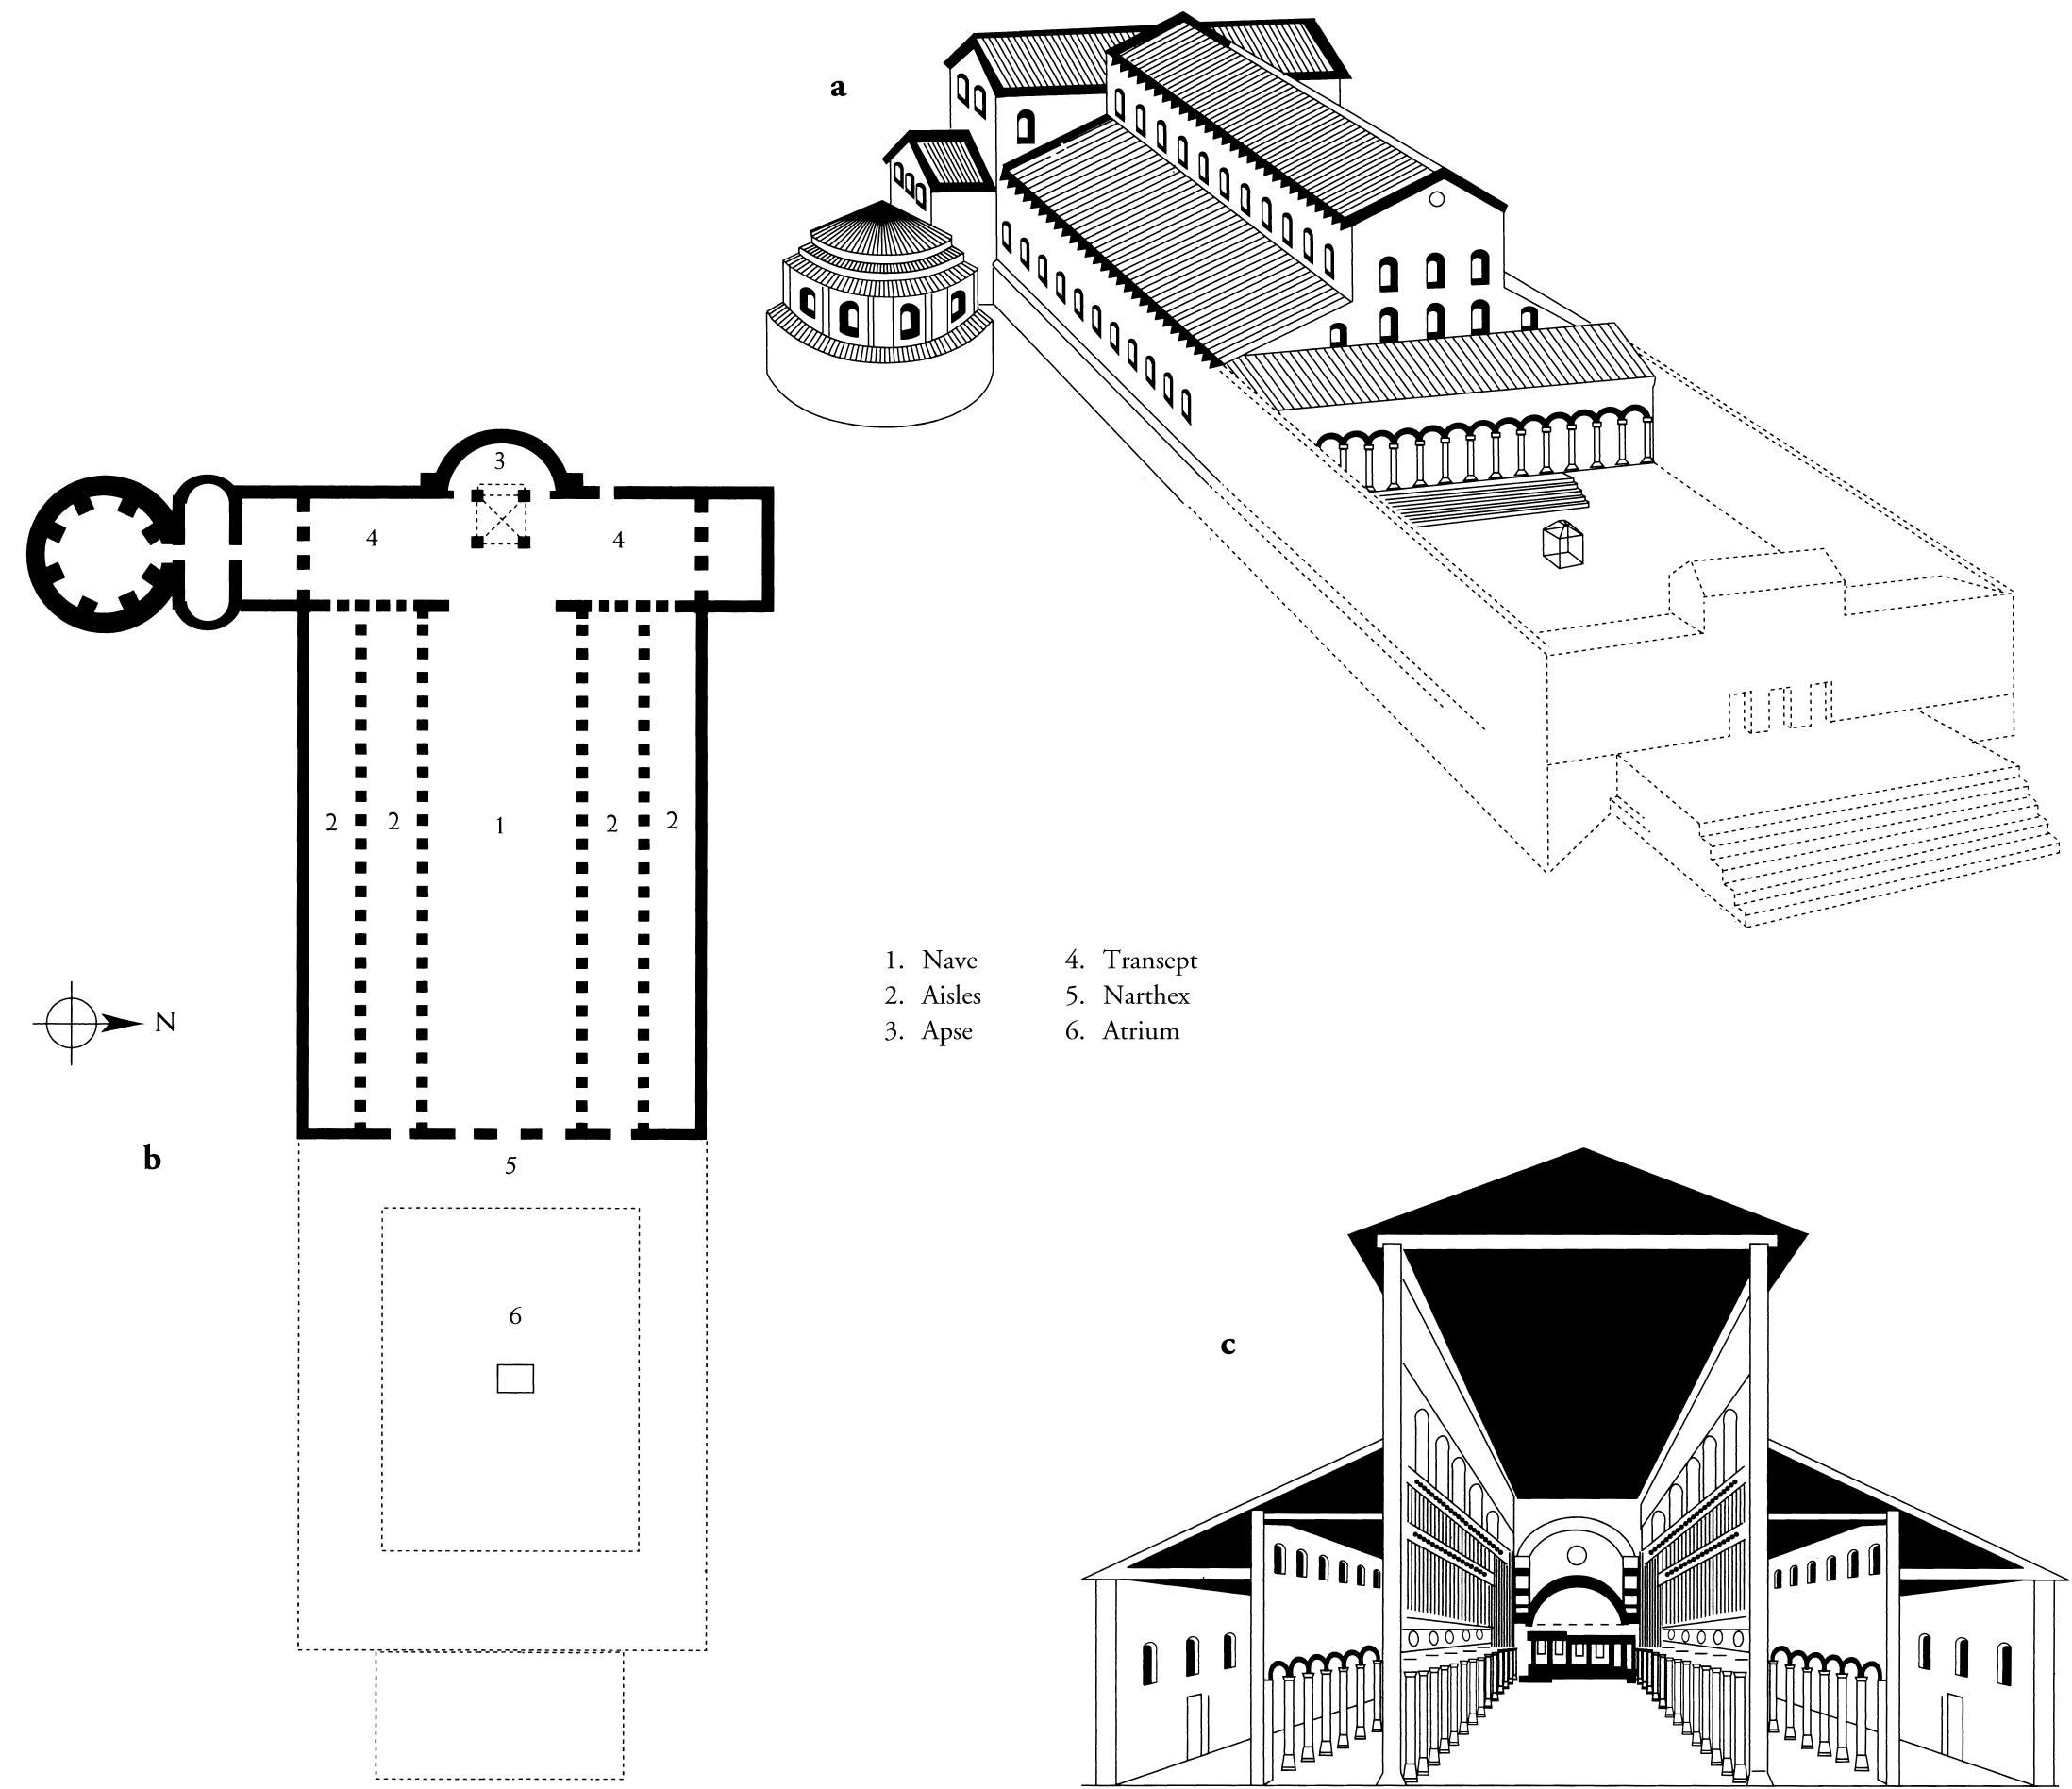 plan of old st peters with bema trancept and atrium entry